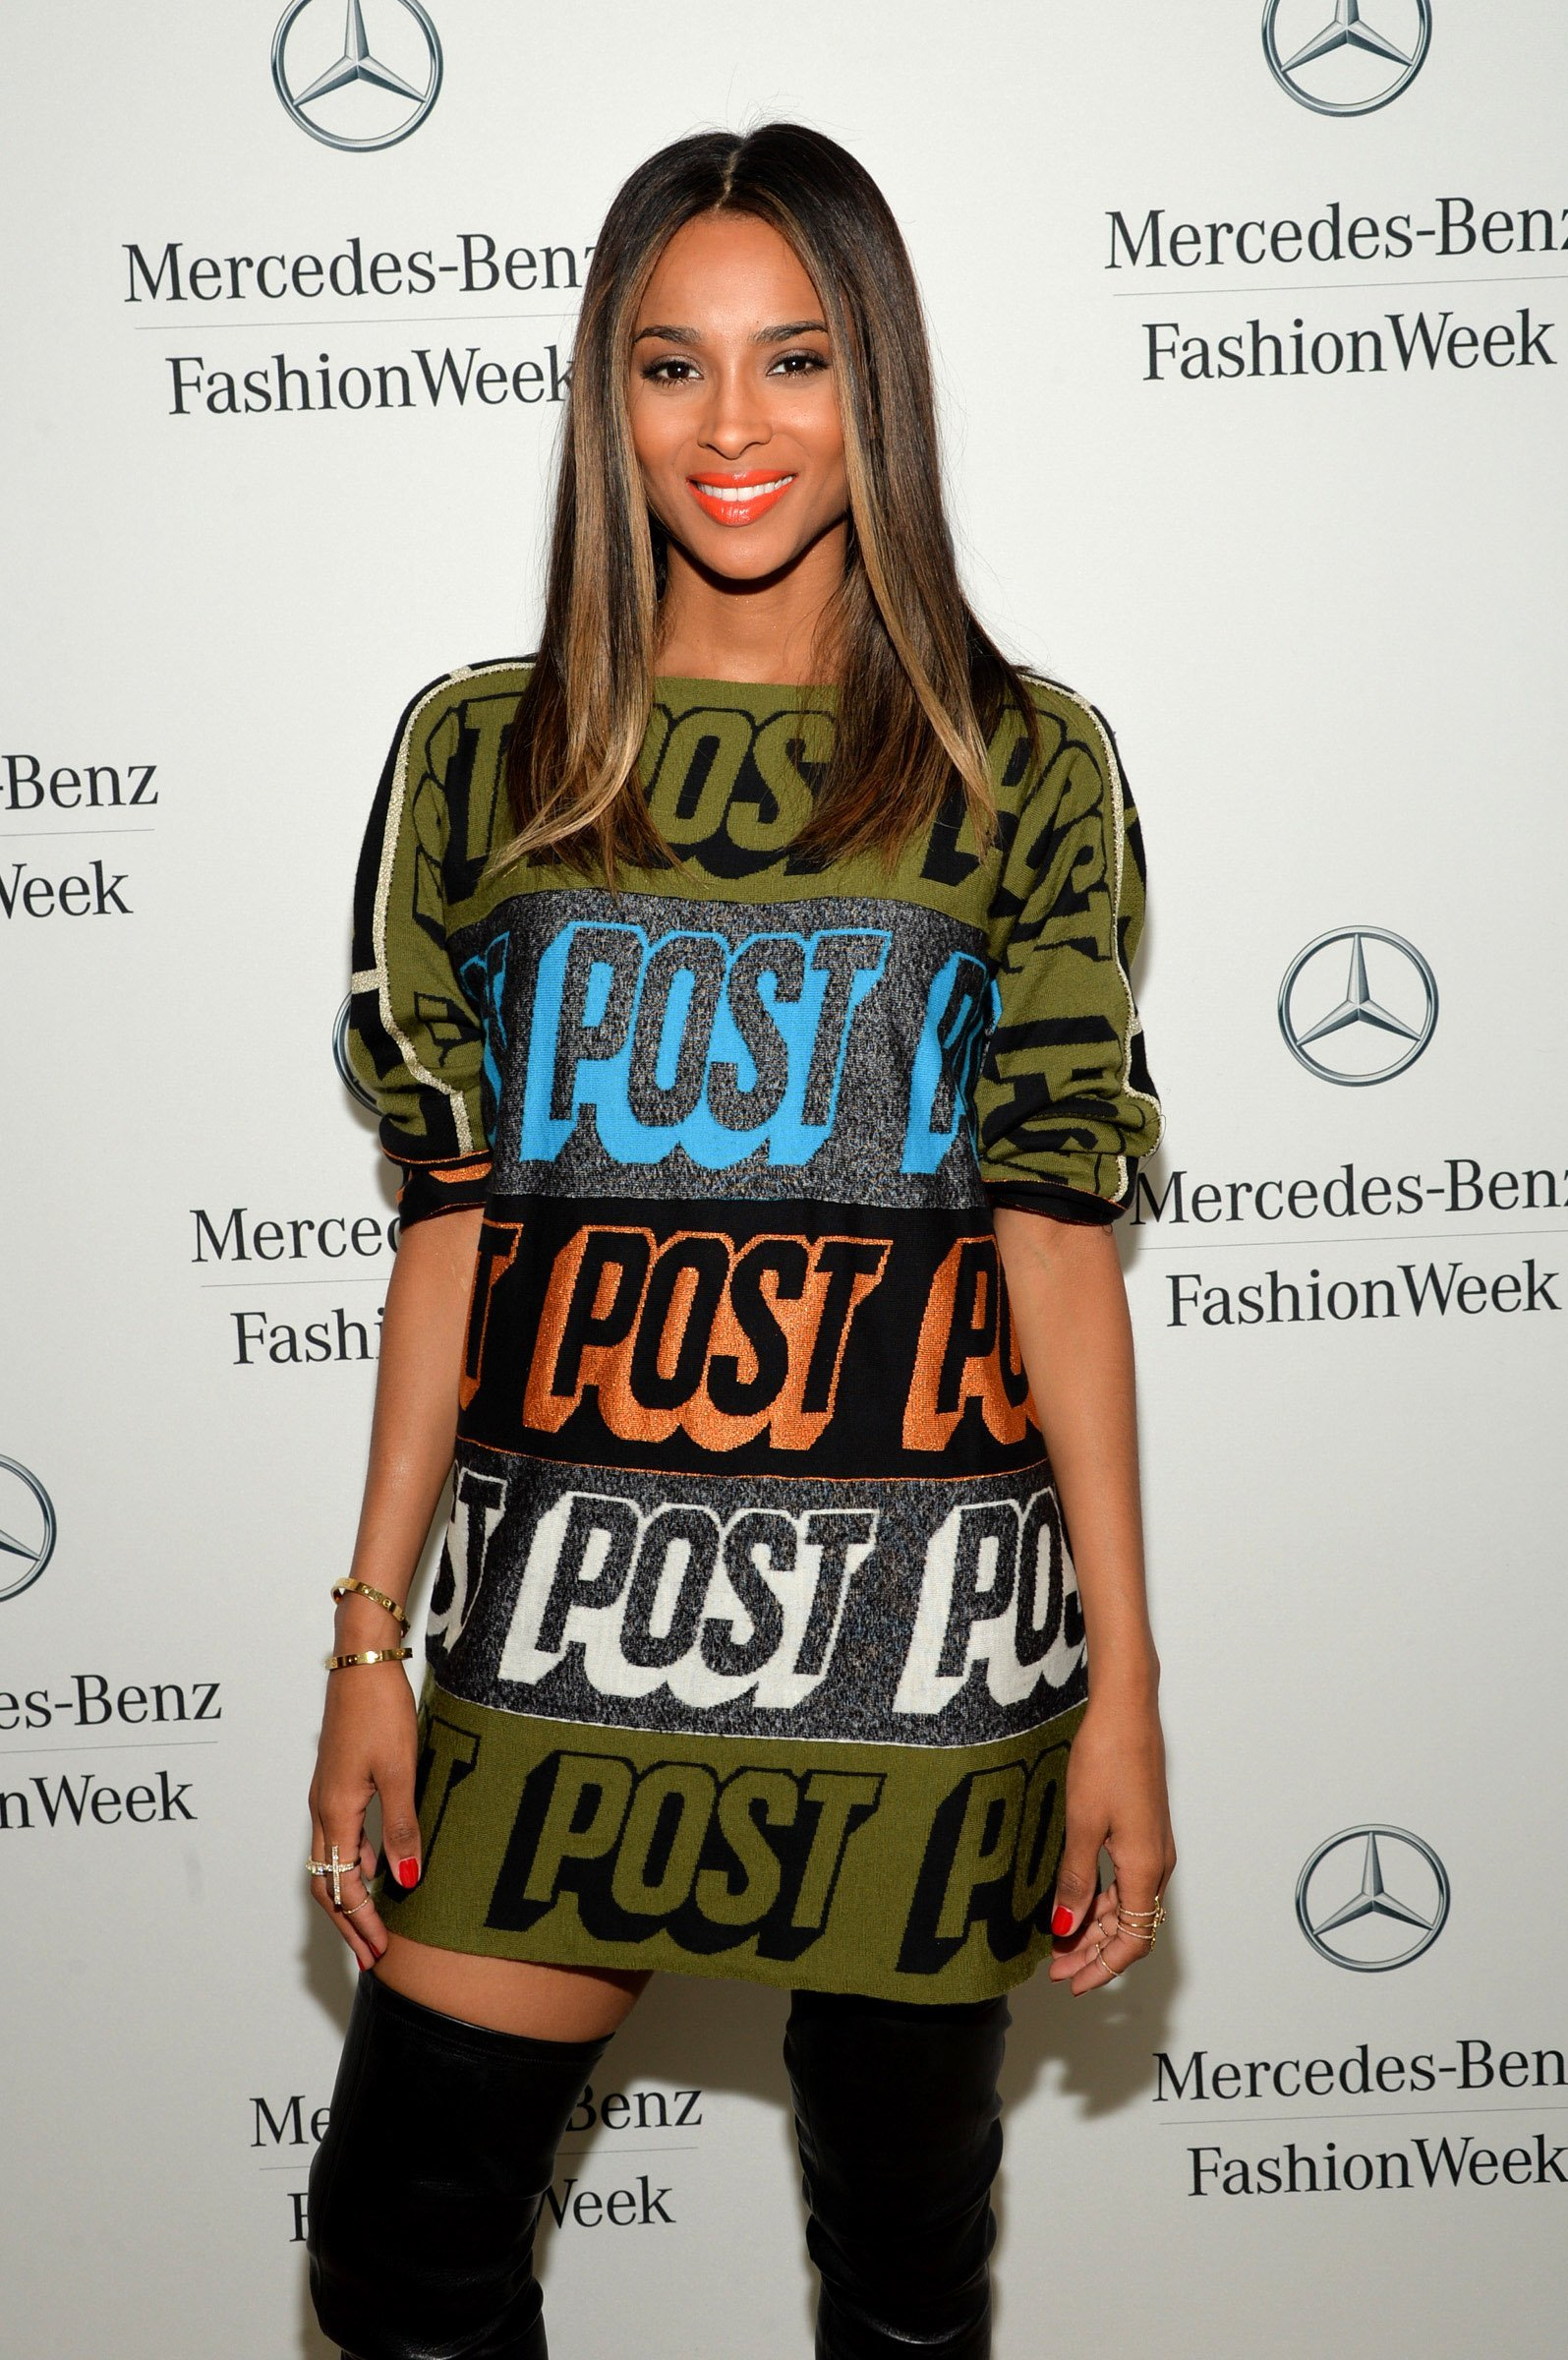 Ciara at the Mercedes-Benz Fashion Week on Sep 9, 2013 in New York City. | Photo: Getty Images